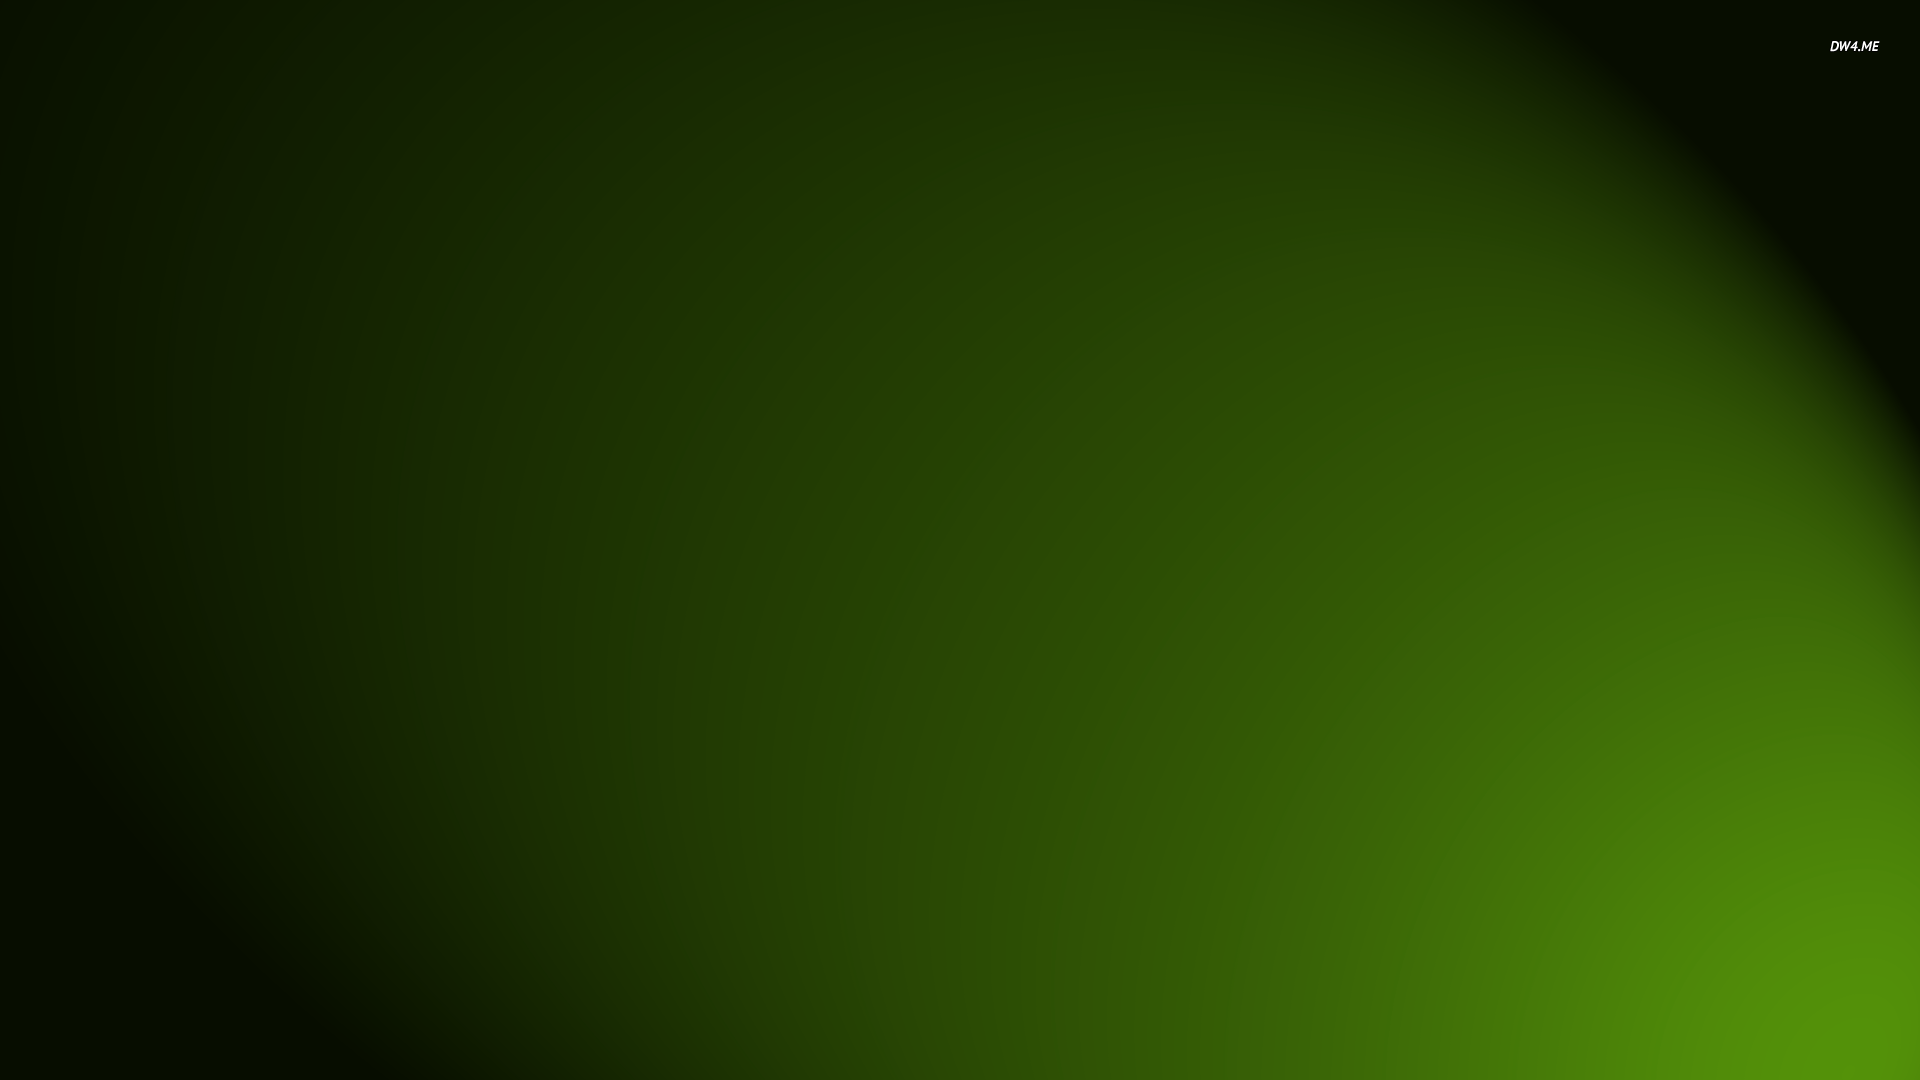 Green Spotlight 342117 - Spotlight PNG HD